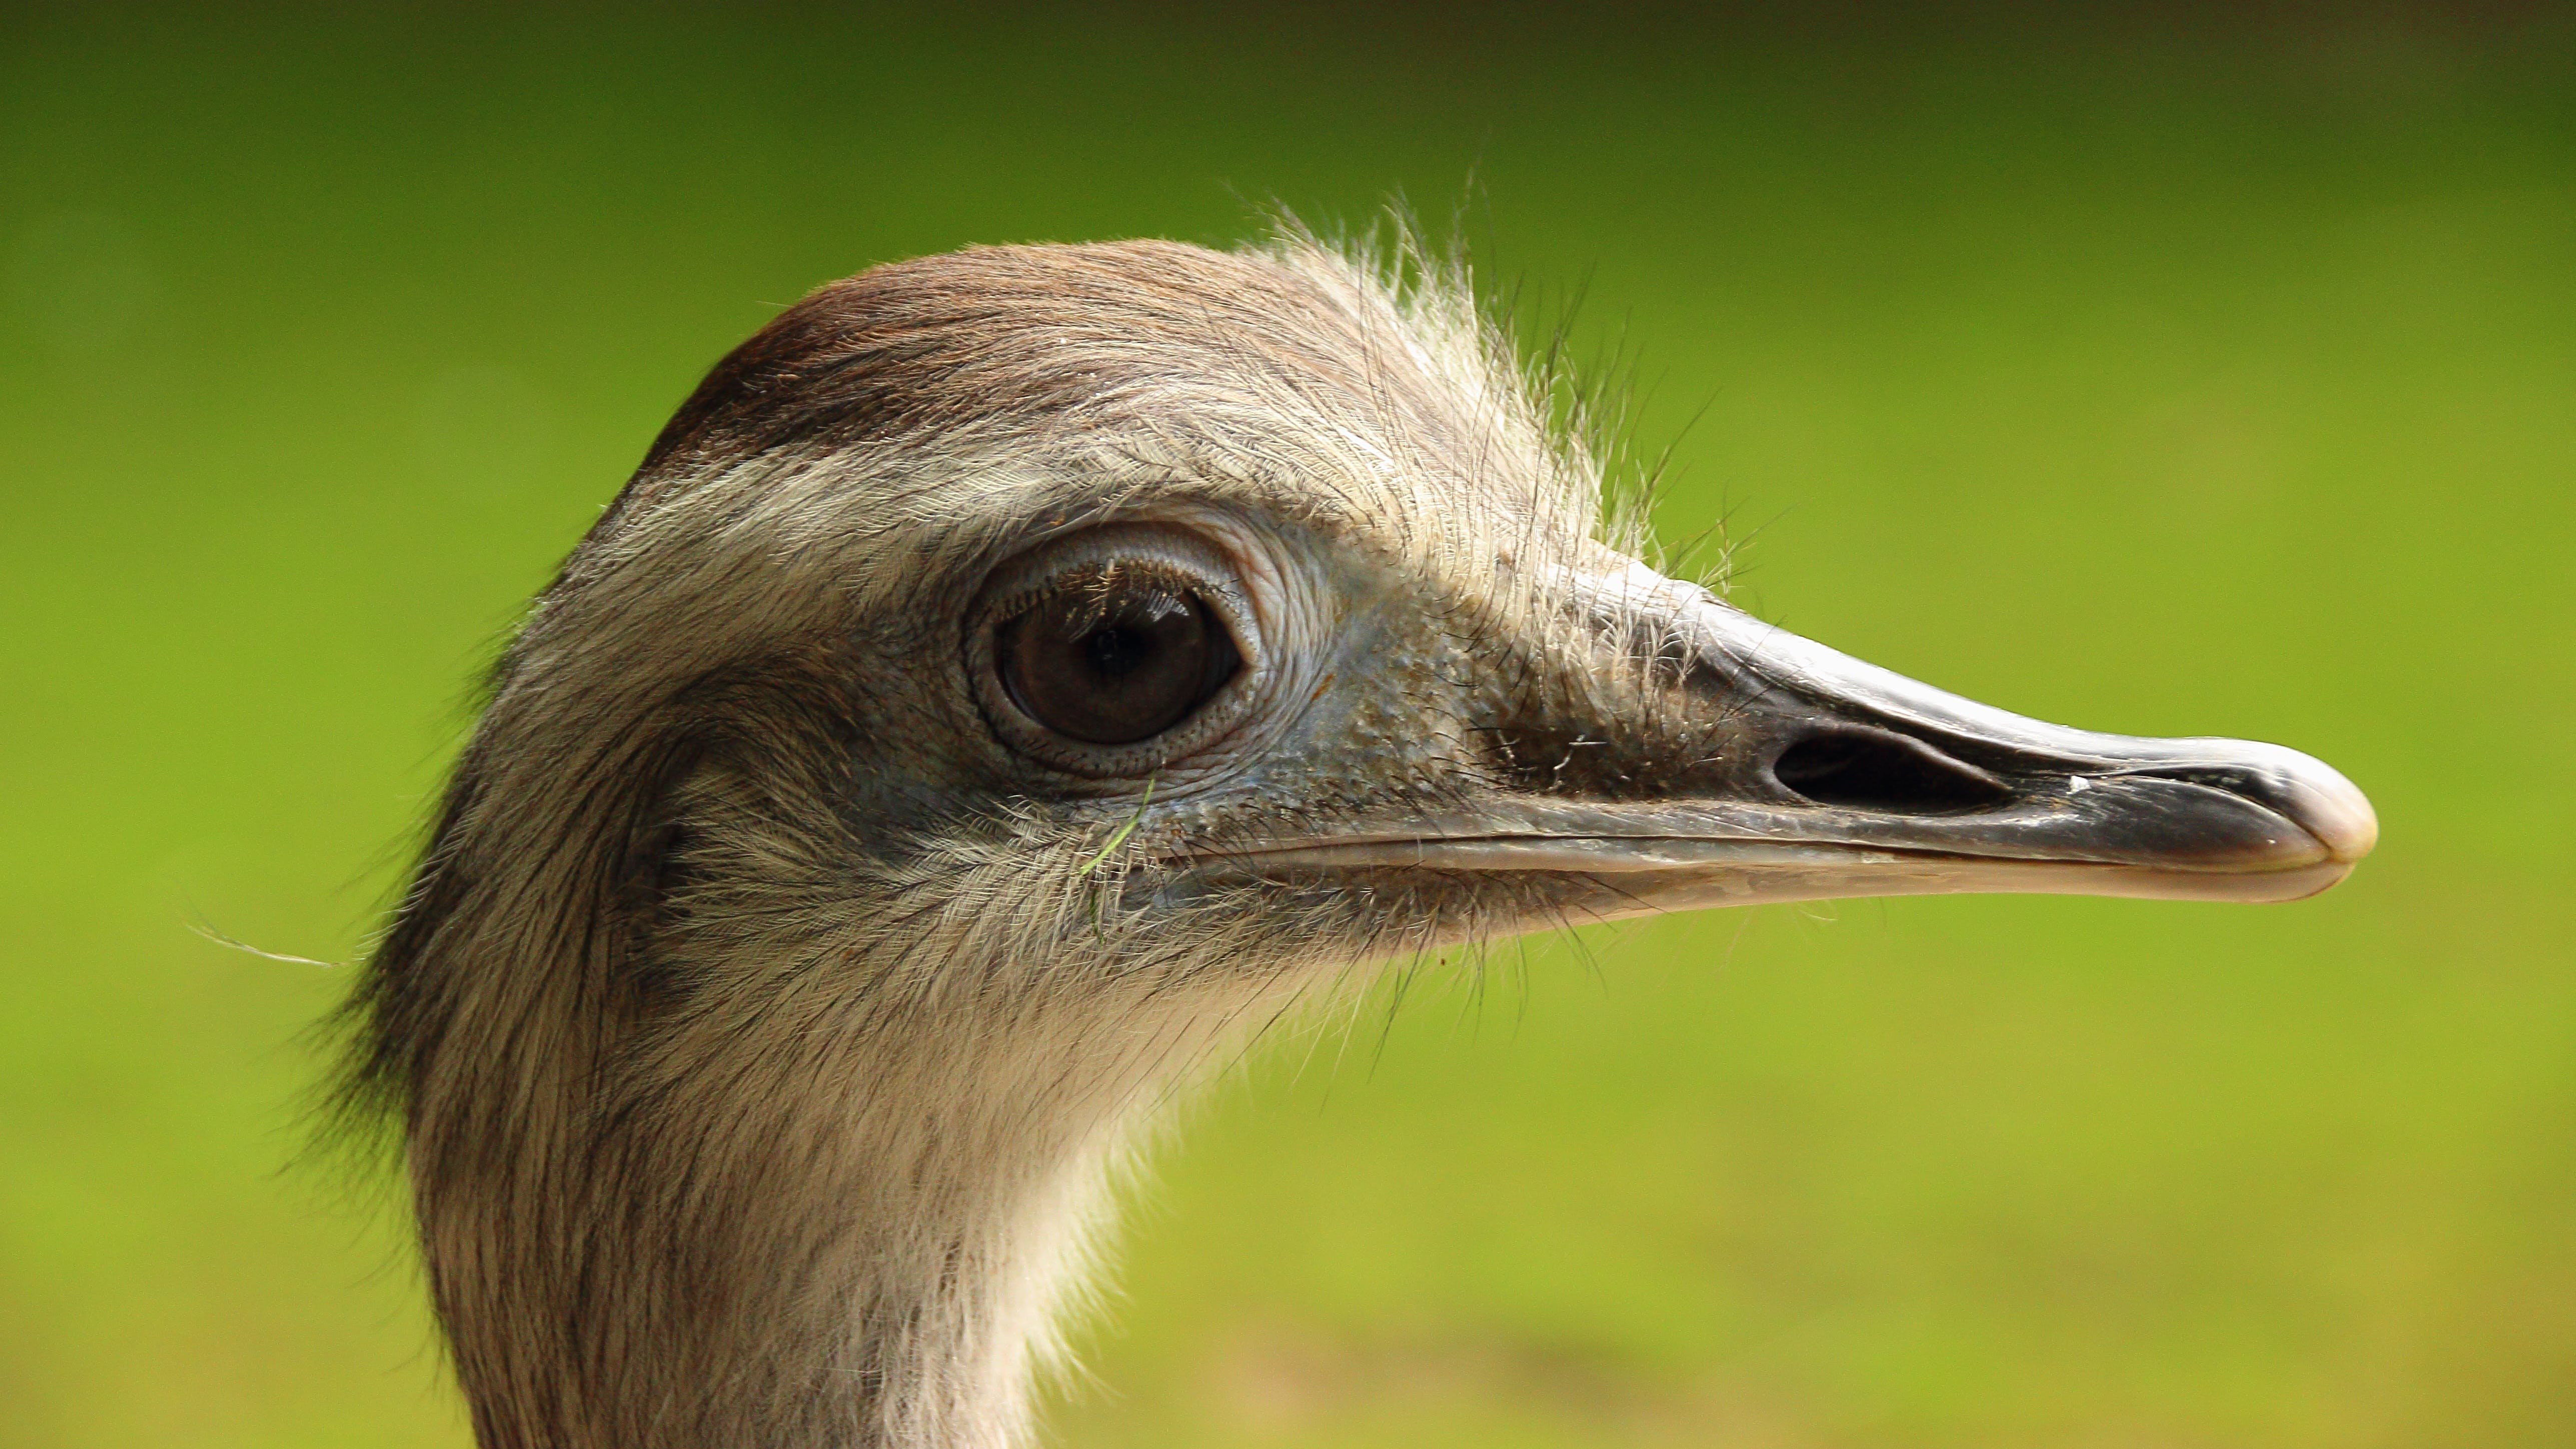 Close Up Photo Graphy of Ostrich Head